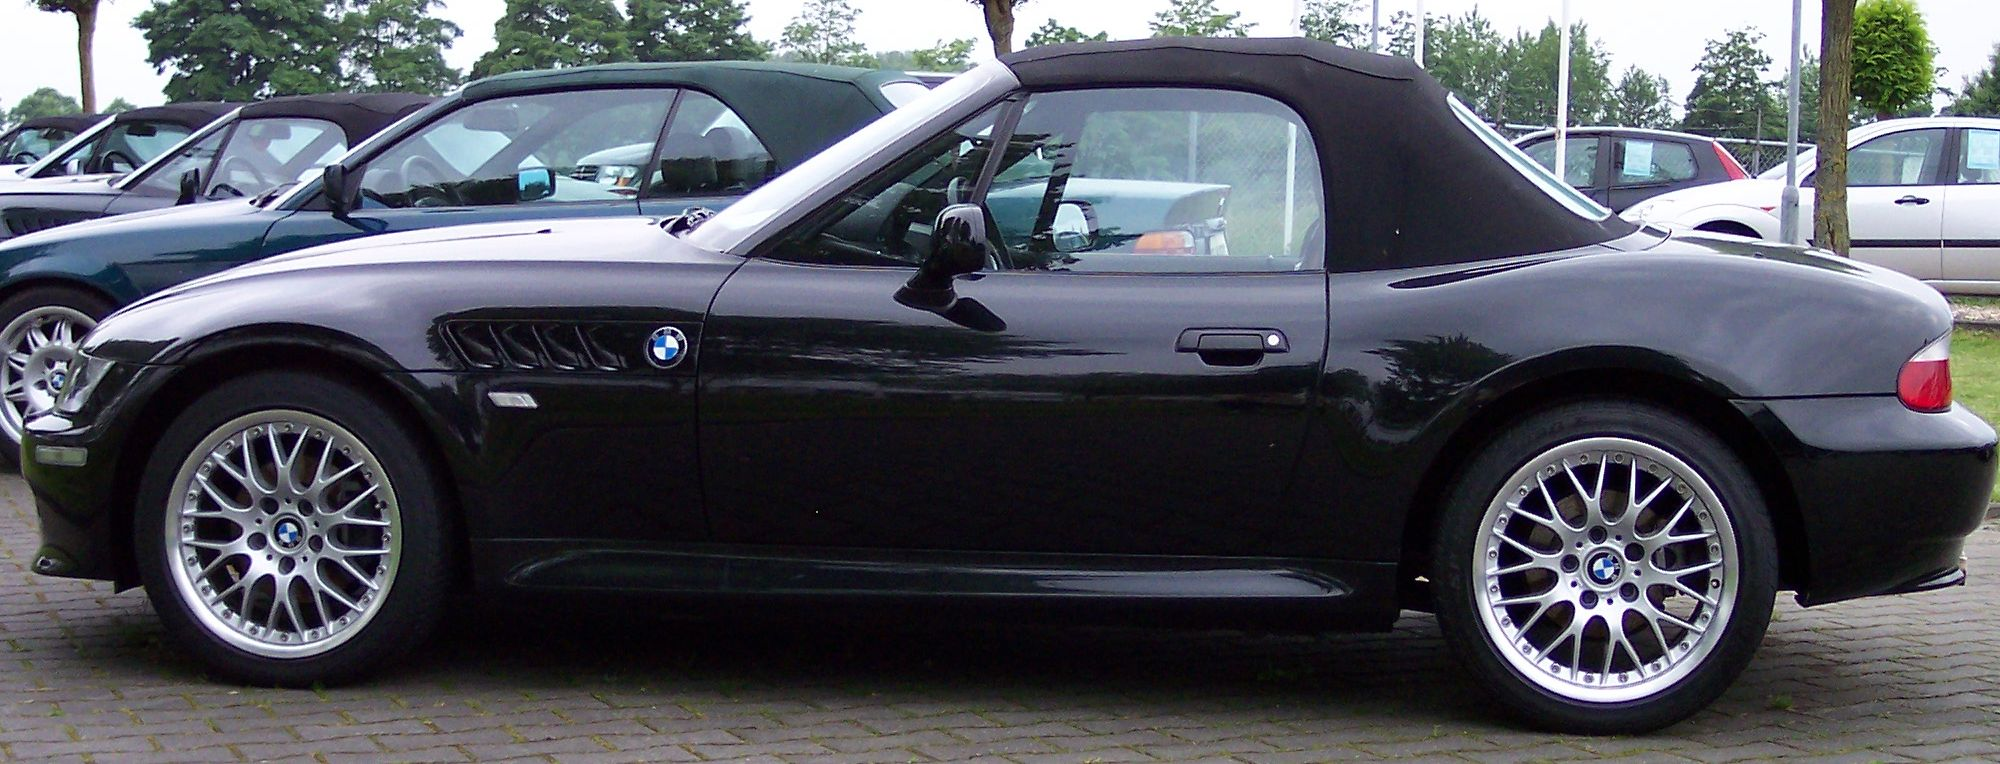 2000 Bmw Z3 Information And Photos Momentcar